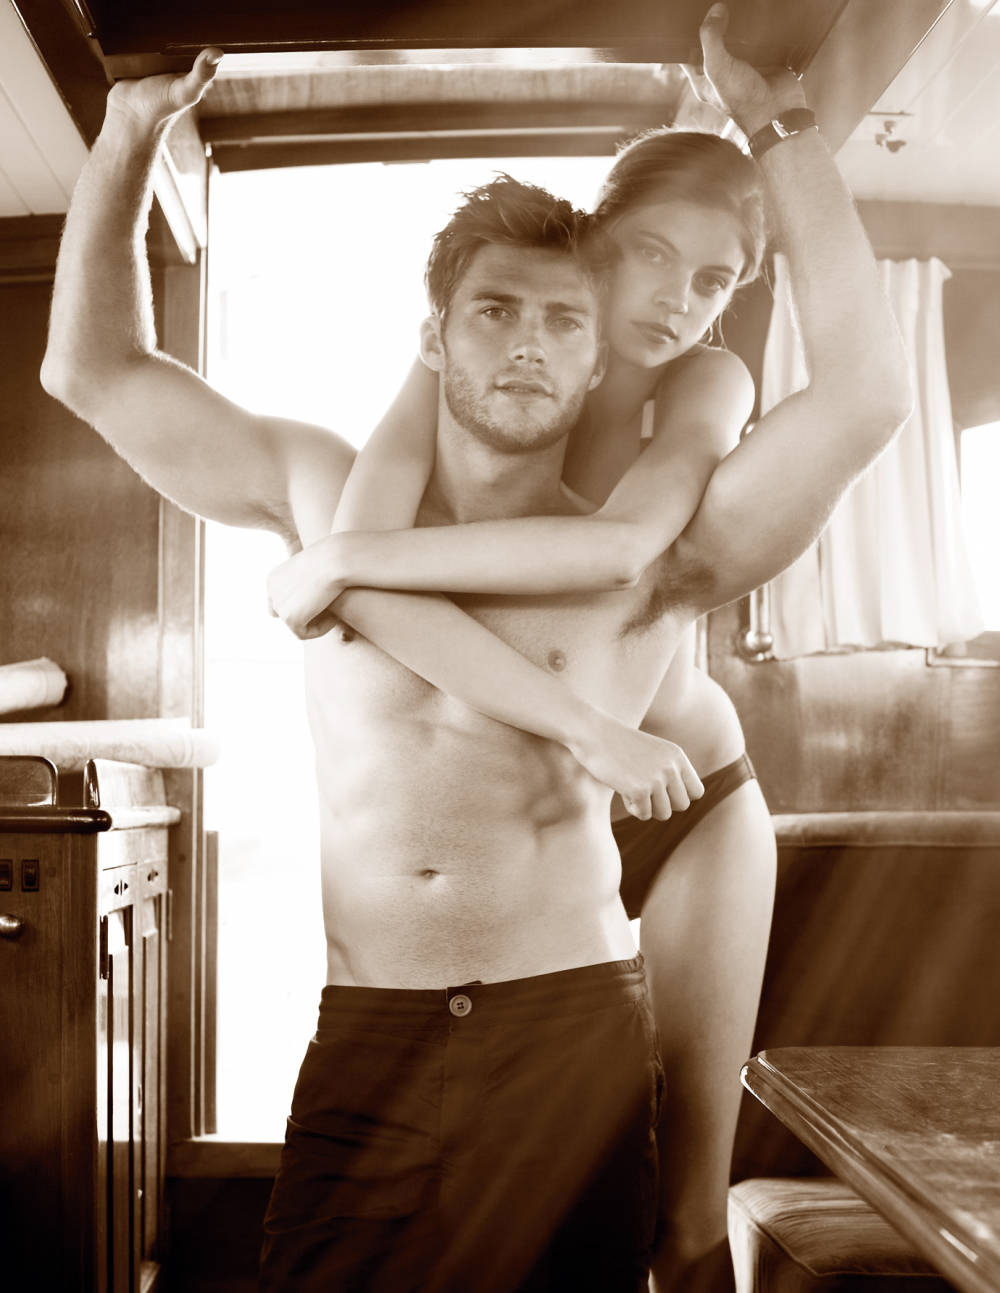 clint eastwood's hot son town & country scott eastwood shirtless